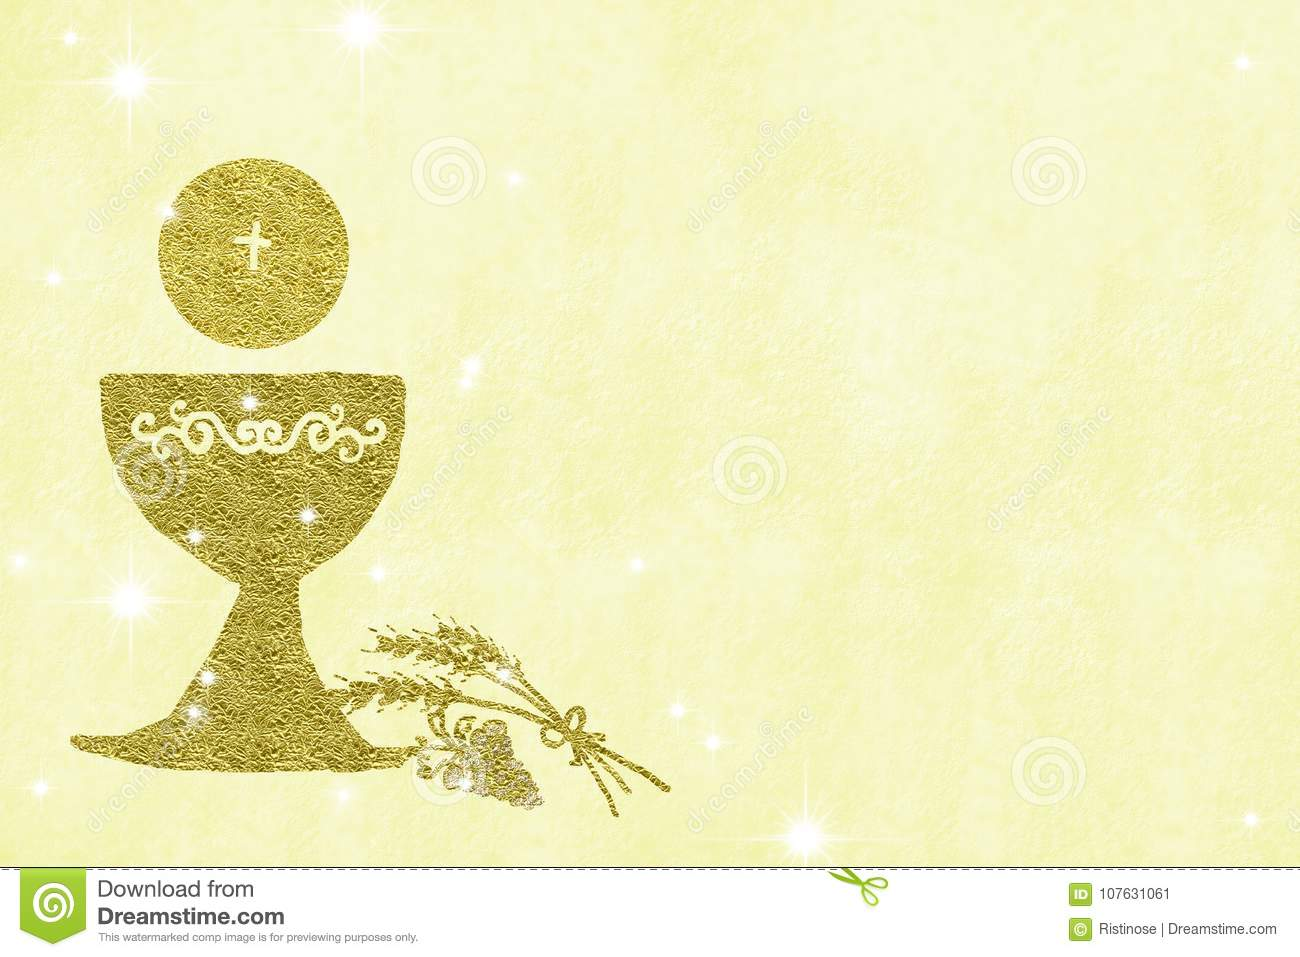 https www dreamstime com my first holy communion invitations gold chalice wheat grapes yellow background empty space text photos image107631061